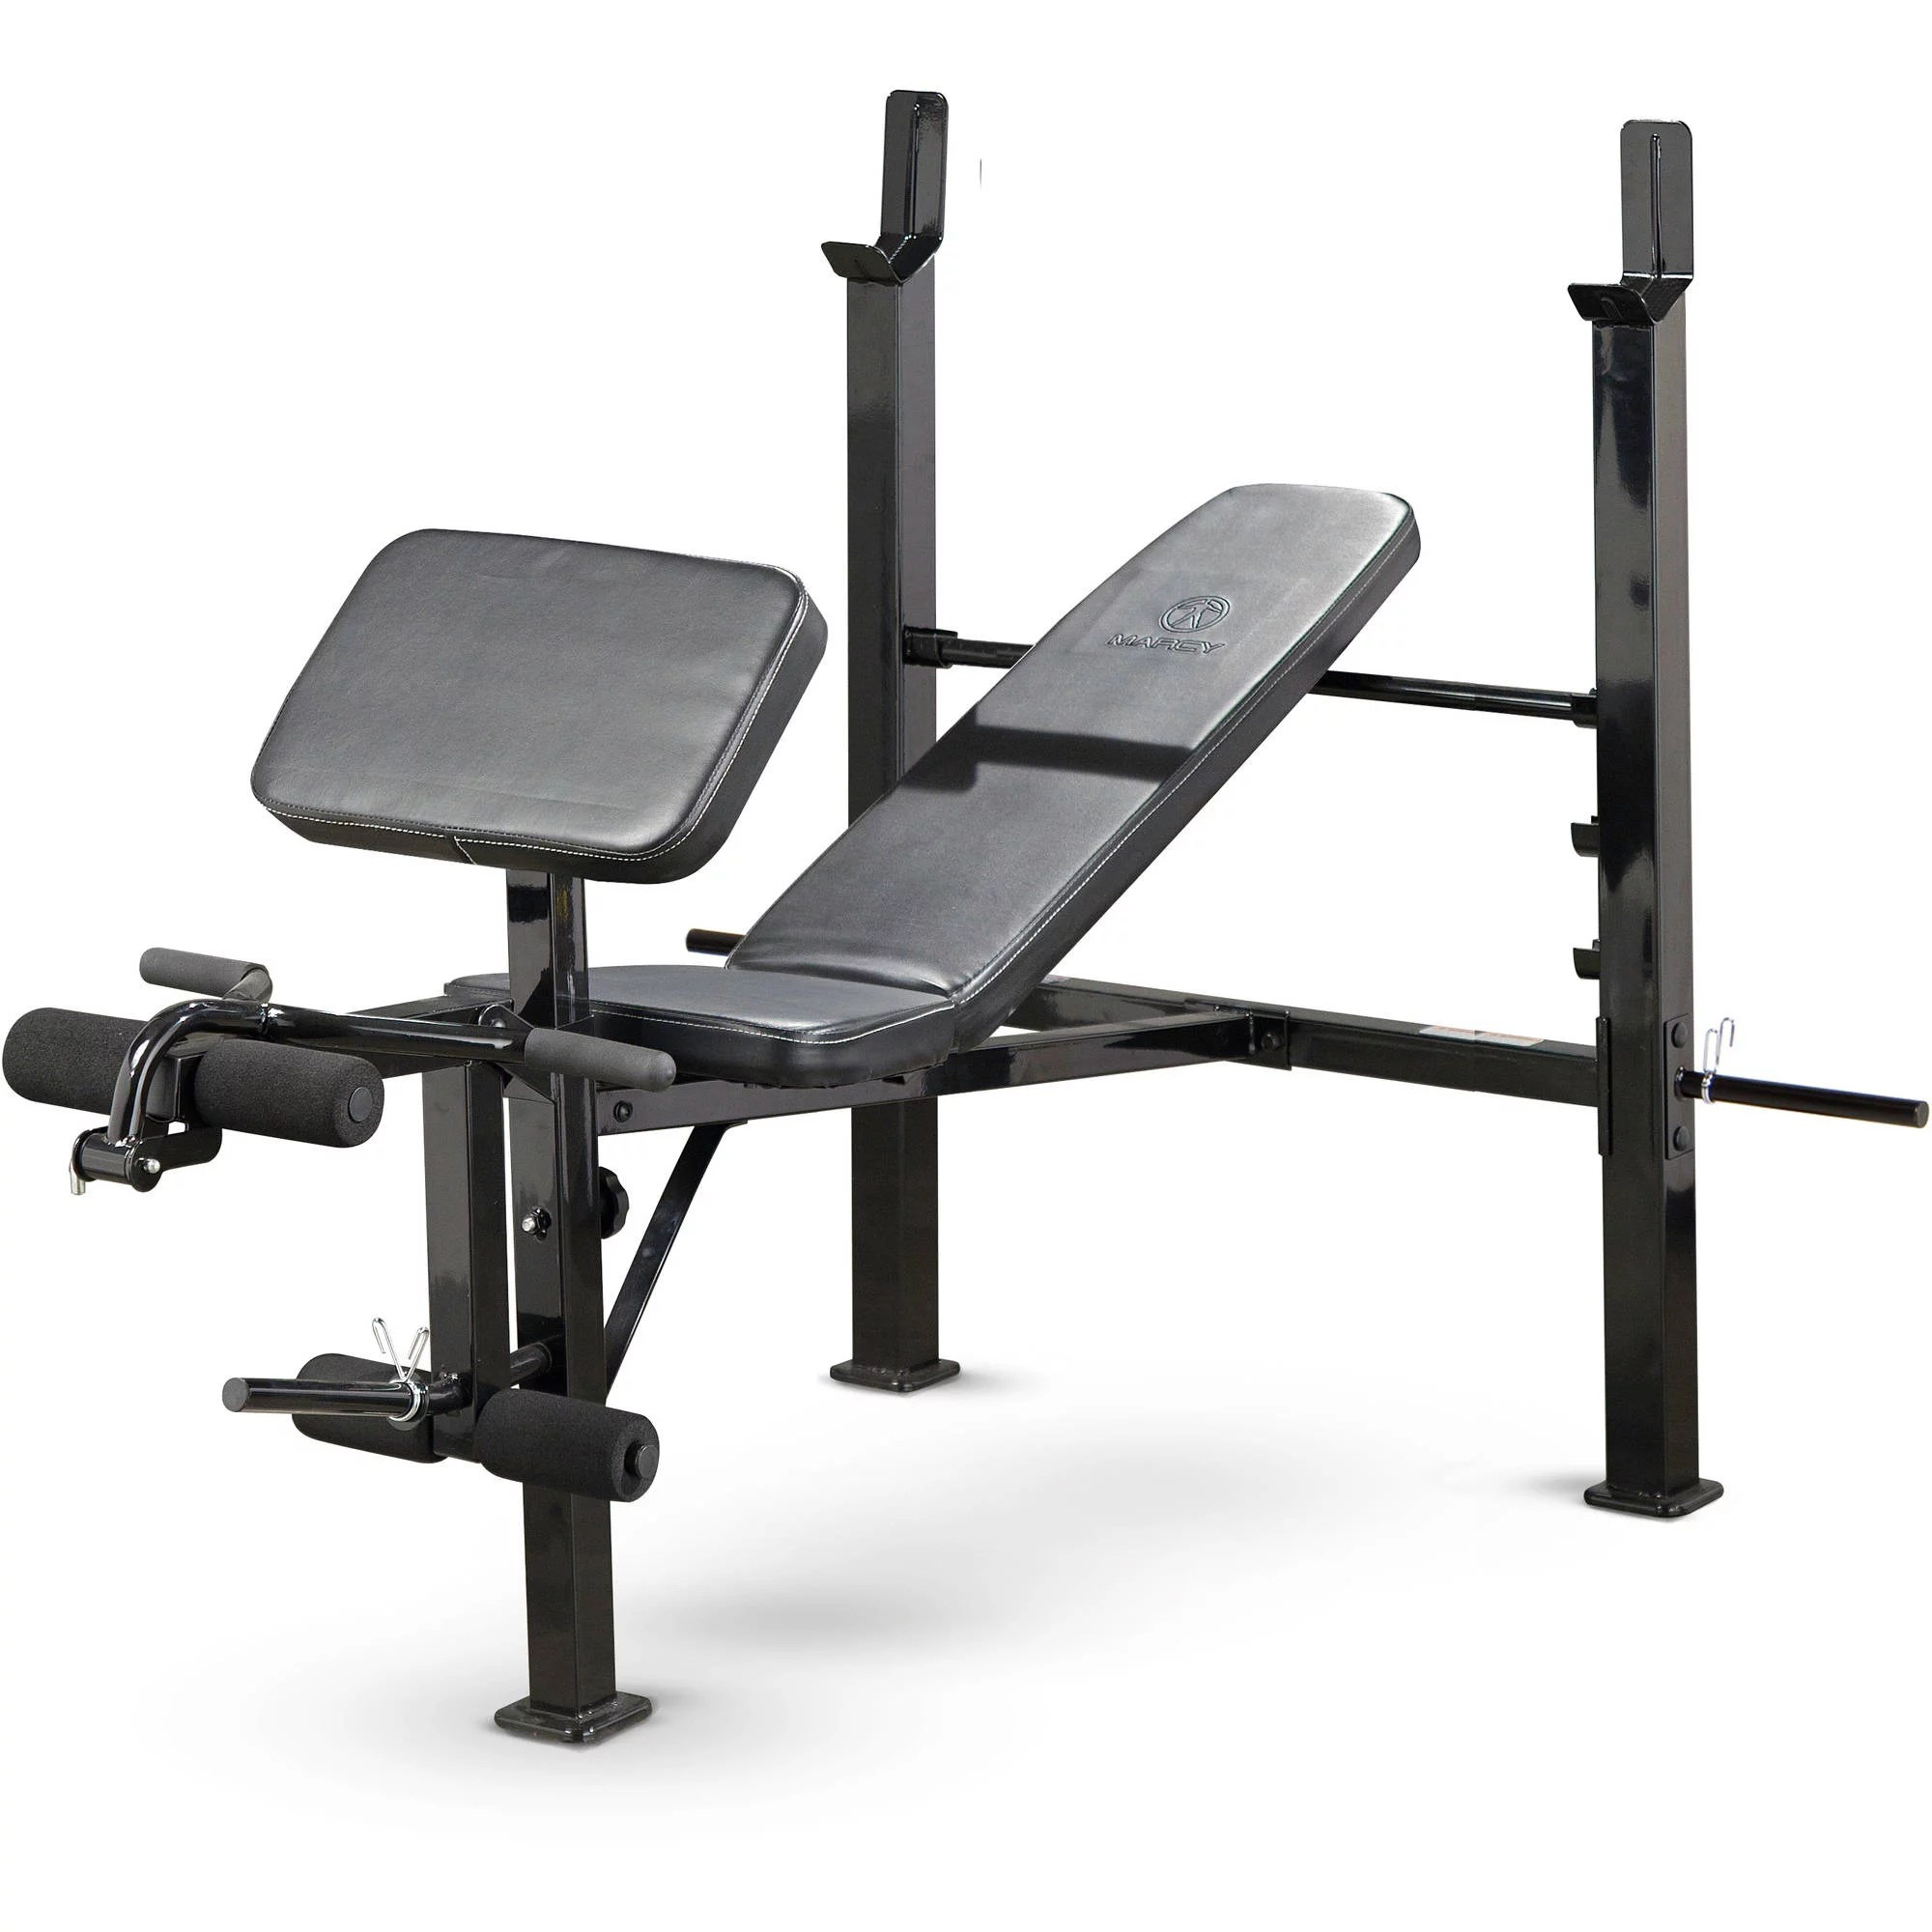 Northern Lights Bench Review